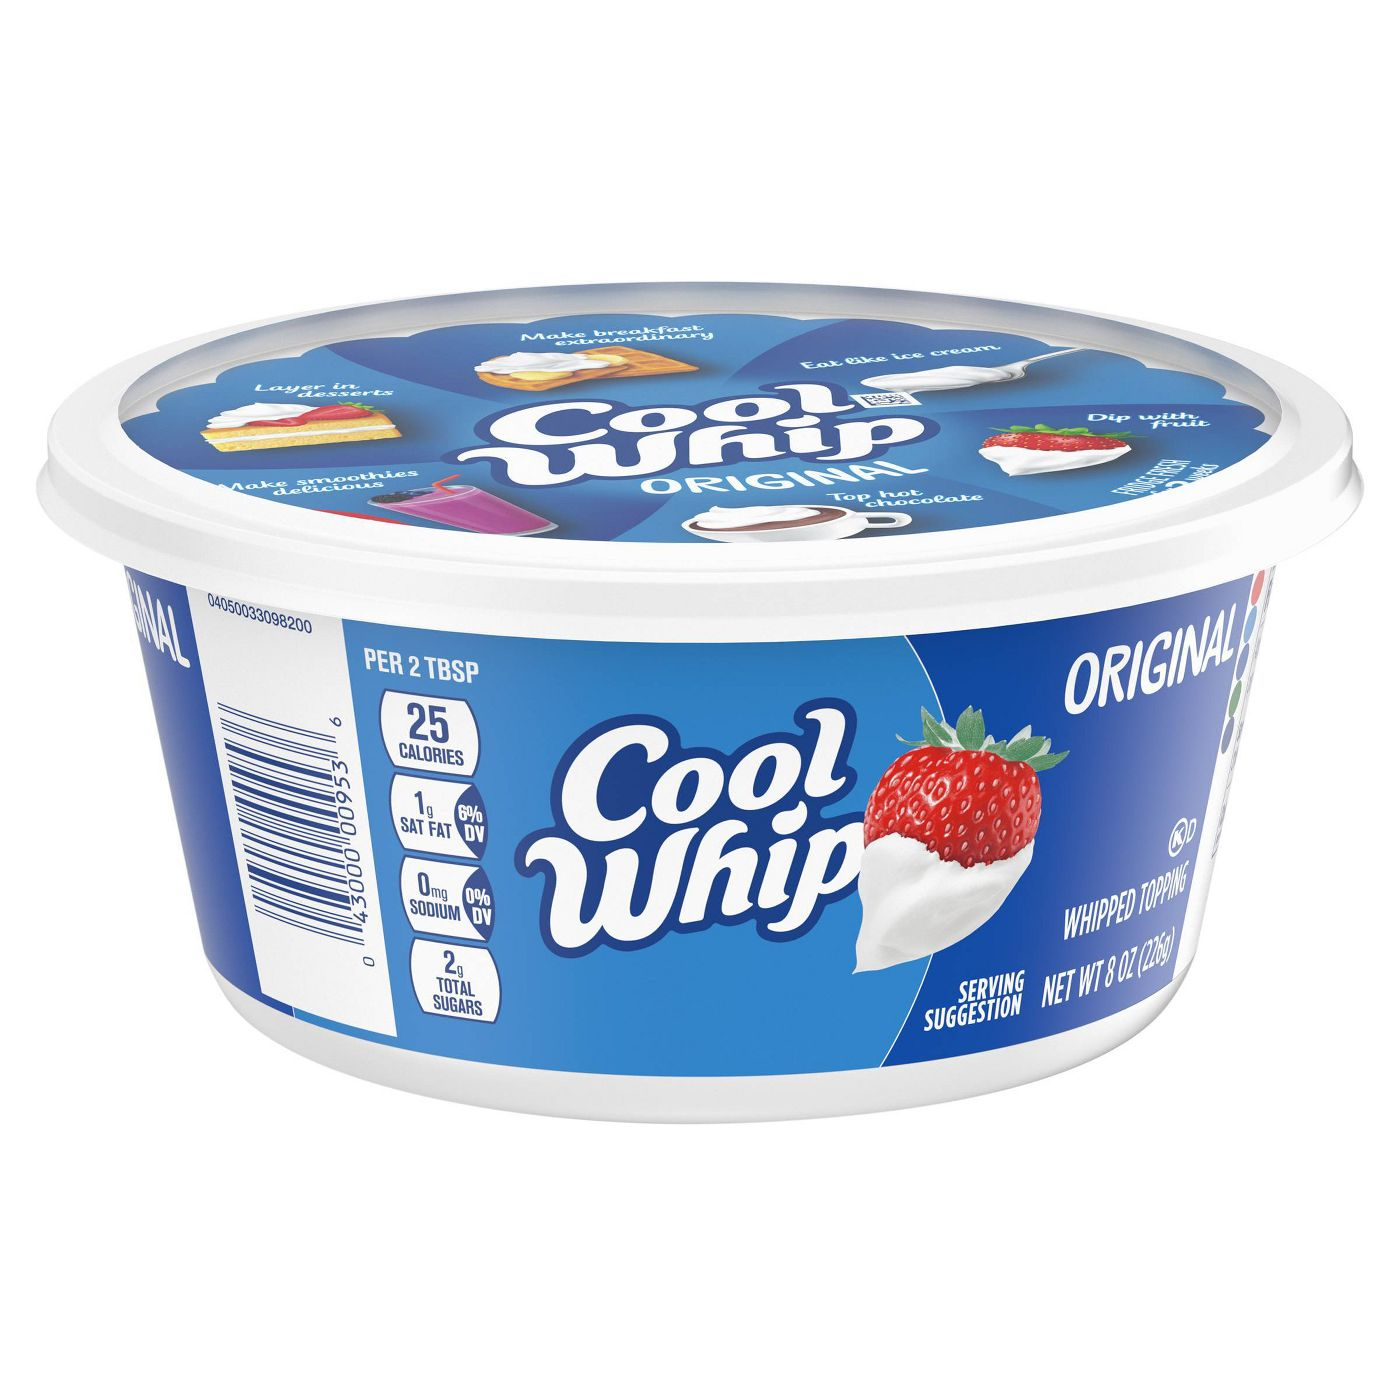 Cool Whip Original Frozen Whipped Topping - 8oz - image 1 of 8